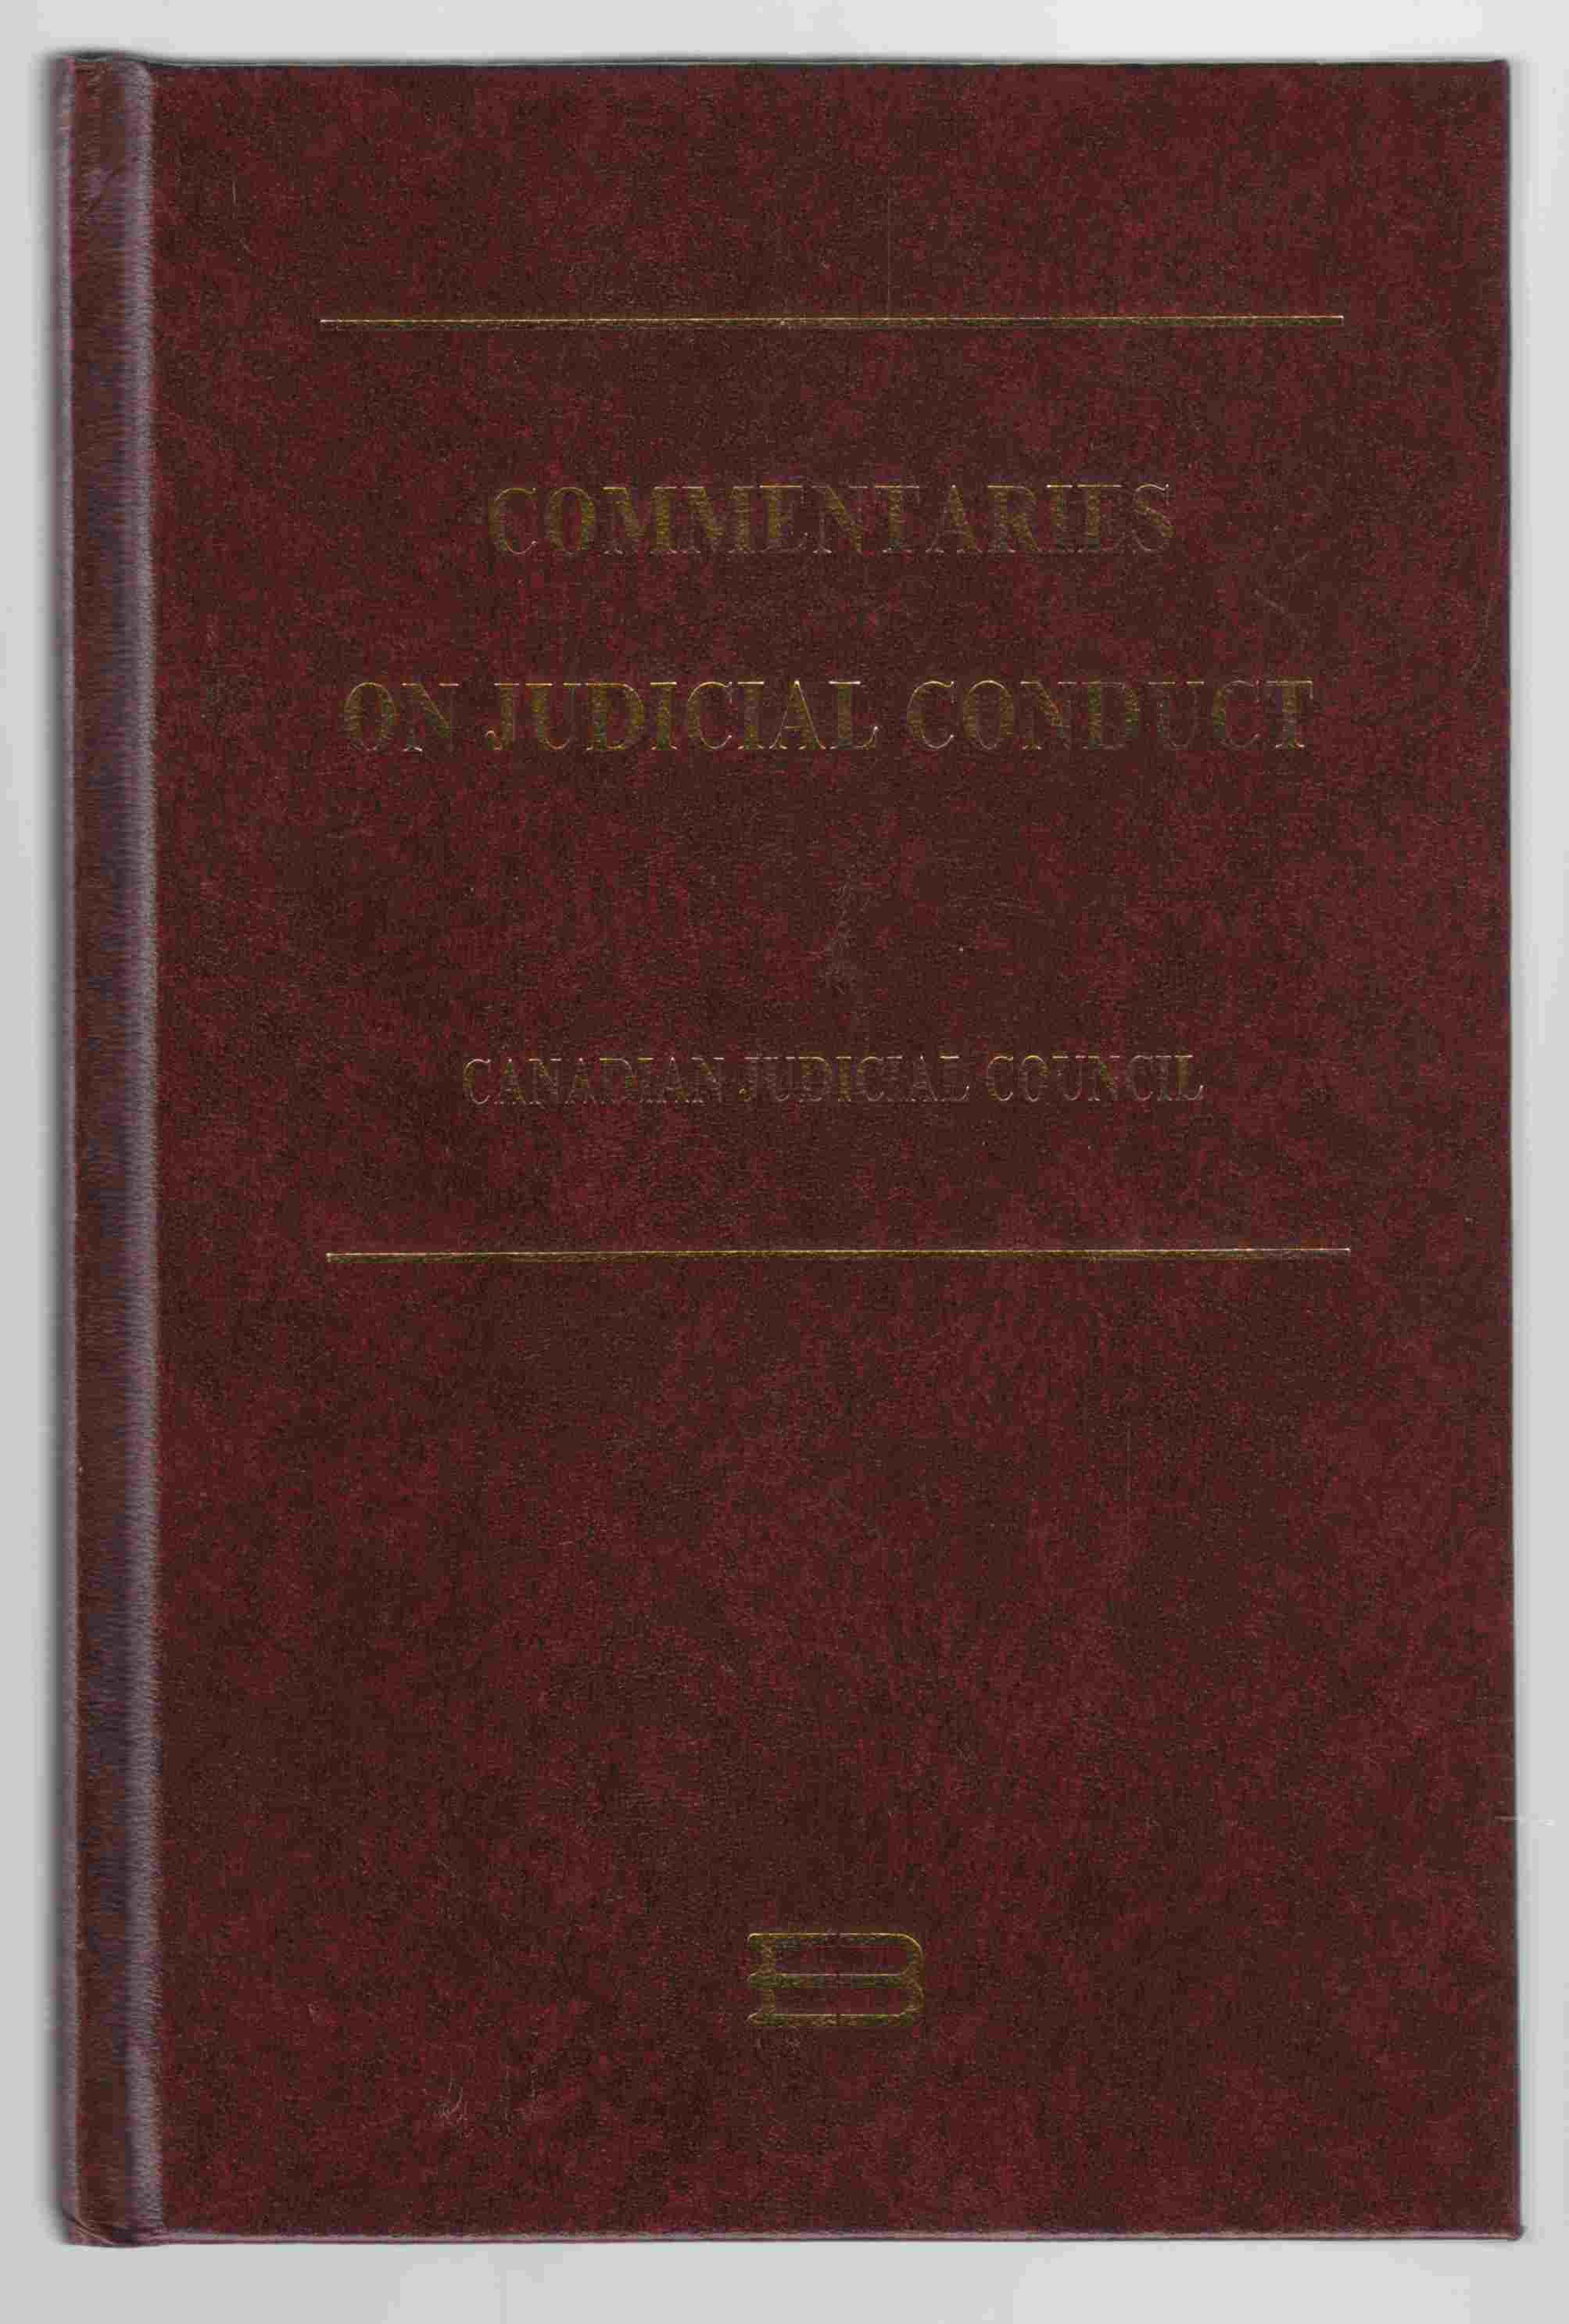 Image for Commentaries on Judicial Conduct